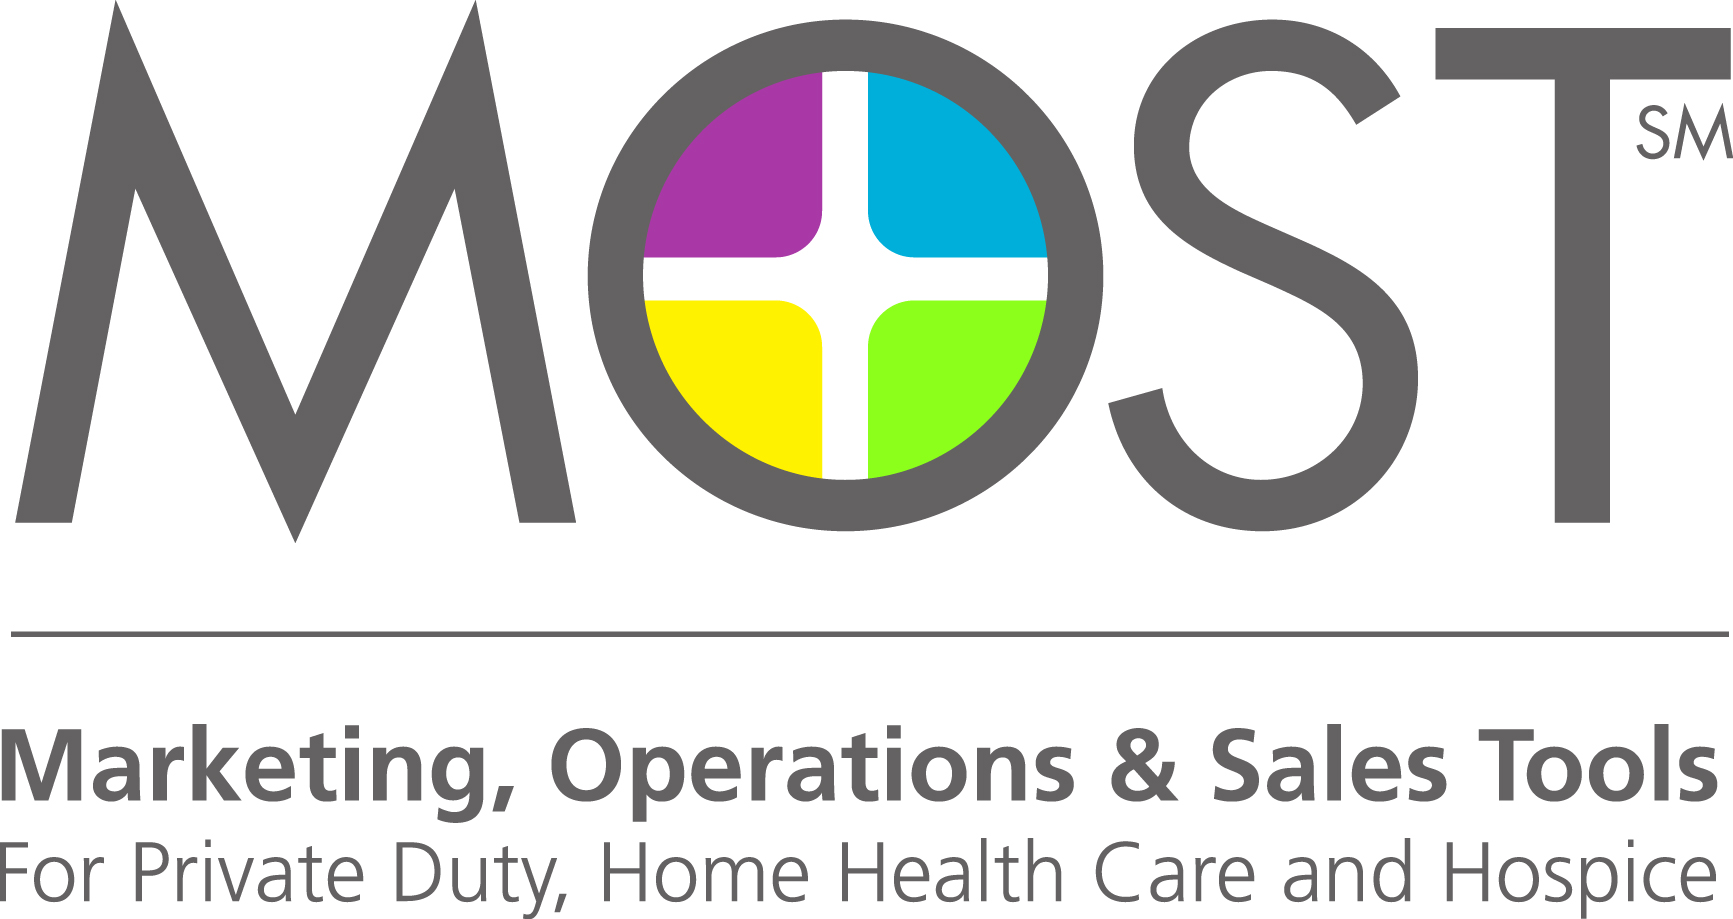 MOST home health care marketing solutions